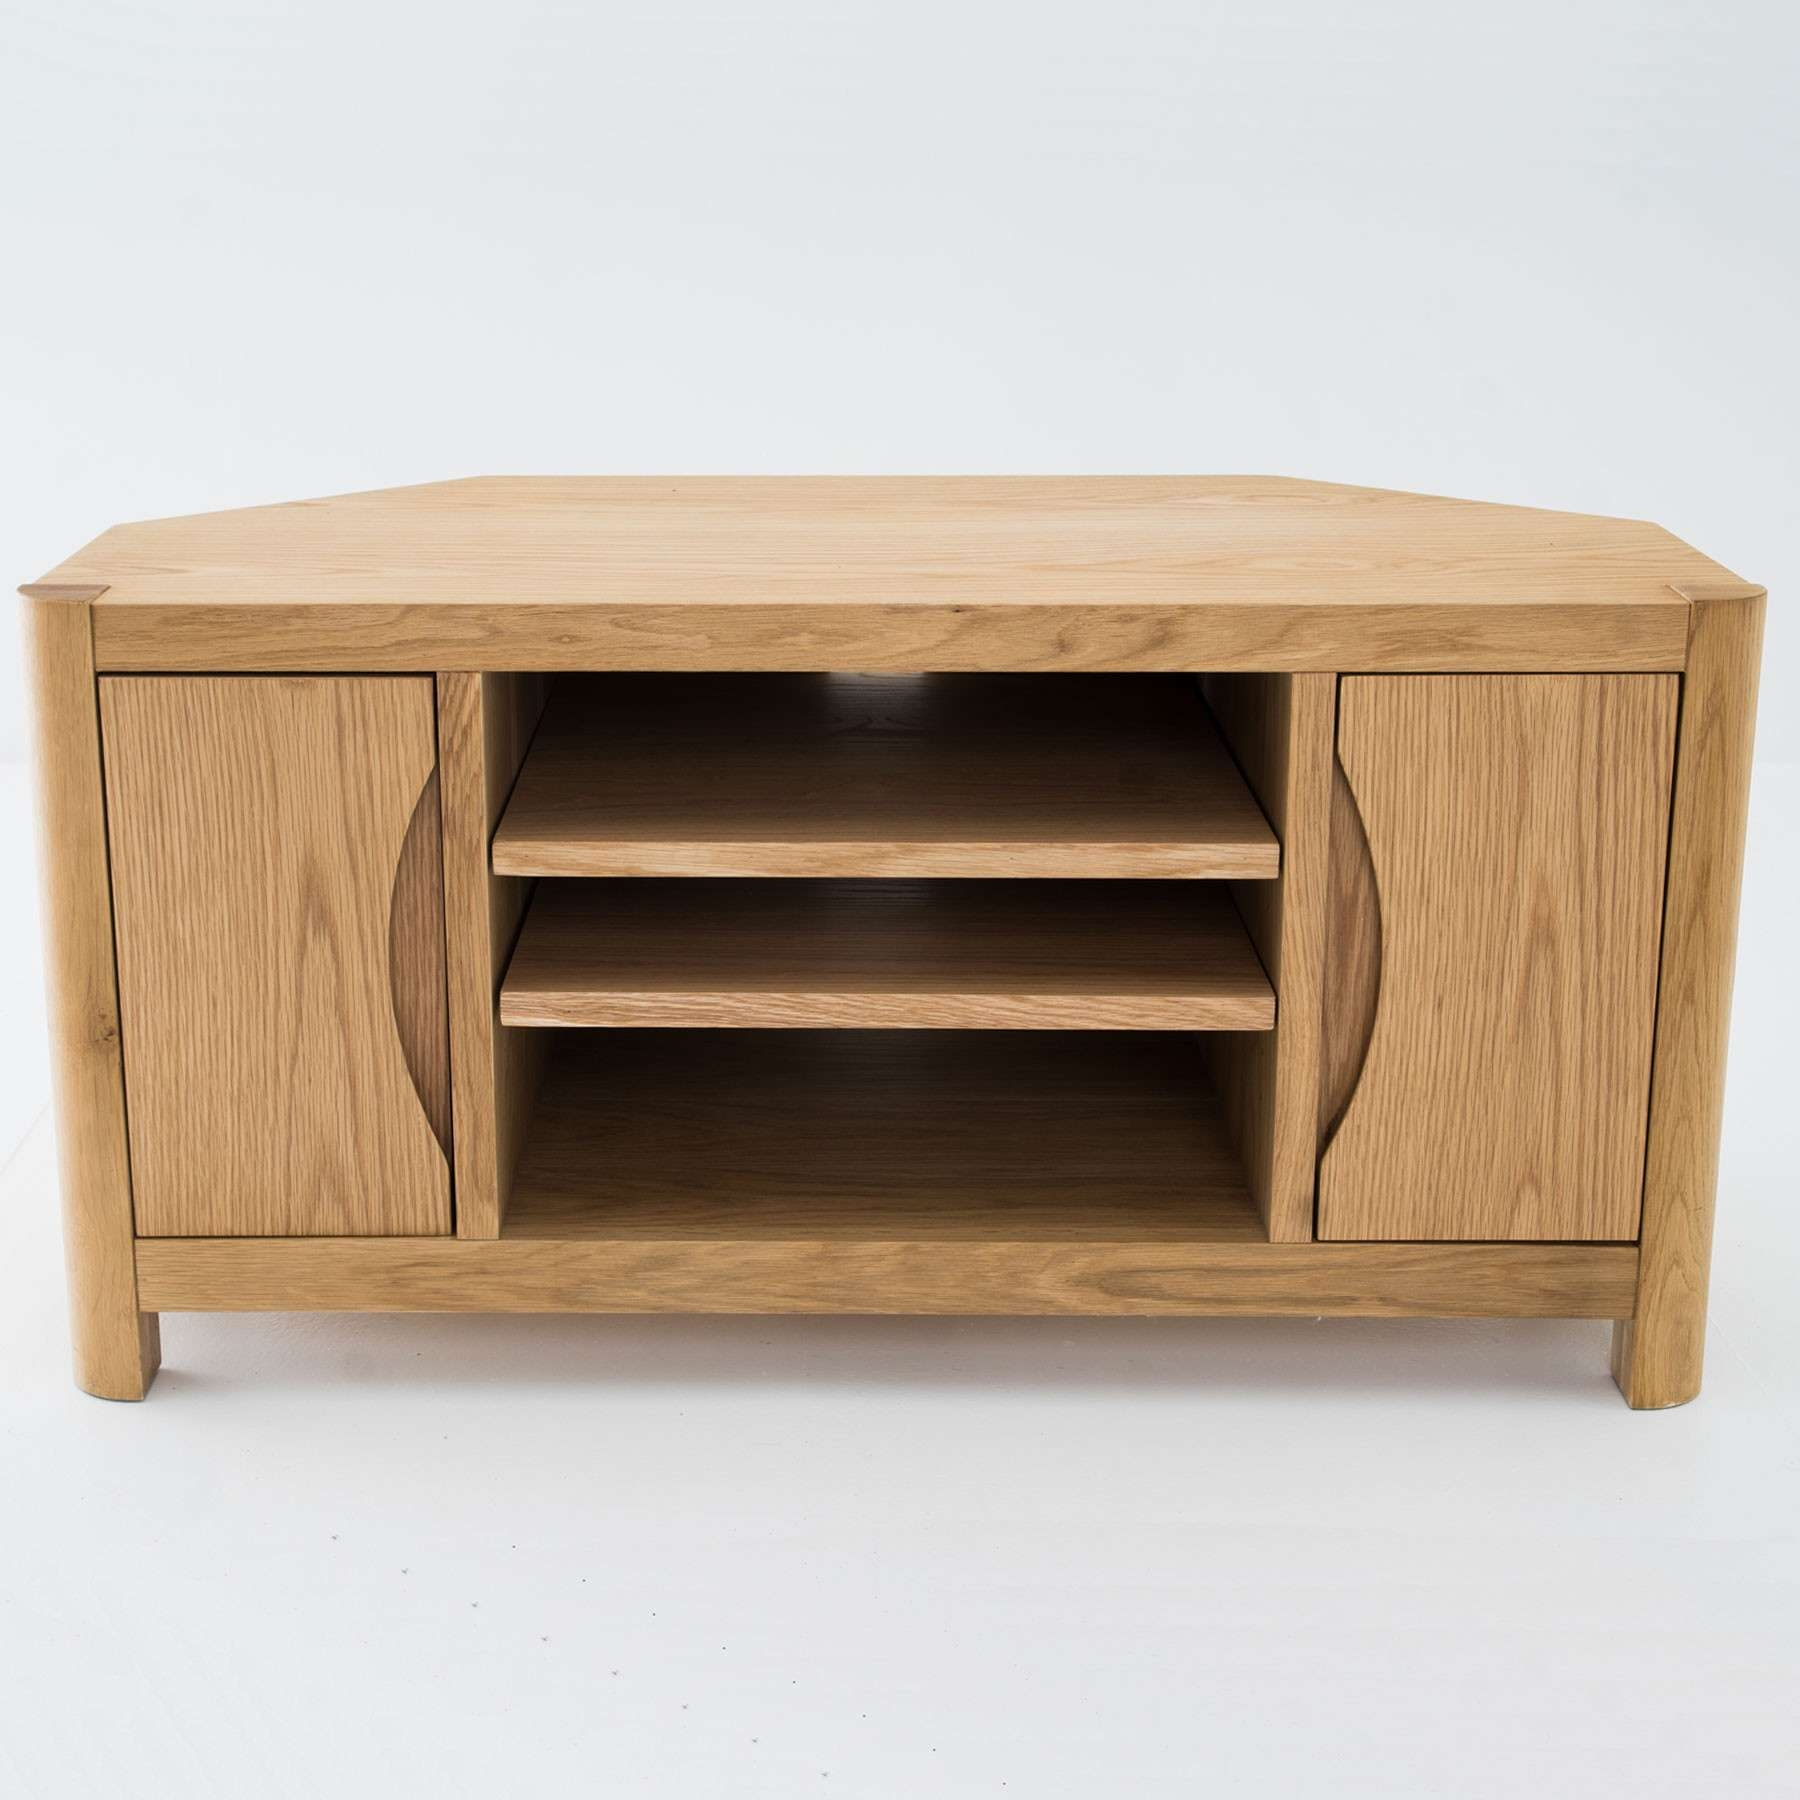 "Oslo Light Oak Corner Tv Stand For Up To 44"" Tvs Pertaining To Light Oak Corner Tv Cabinets (Gallery 2 of 20)"